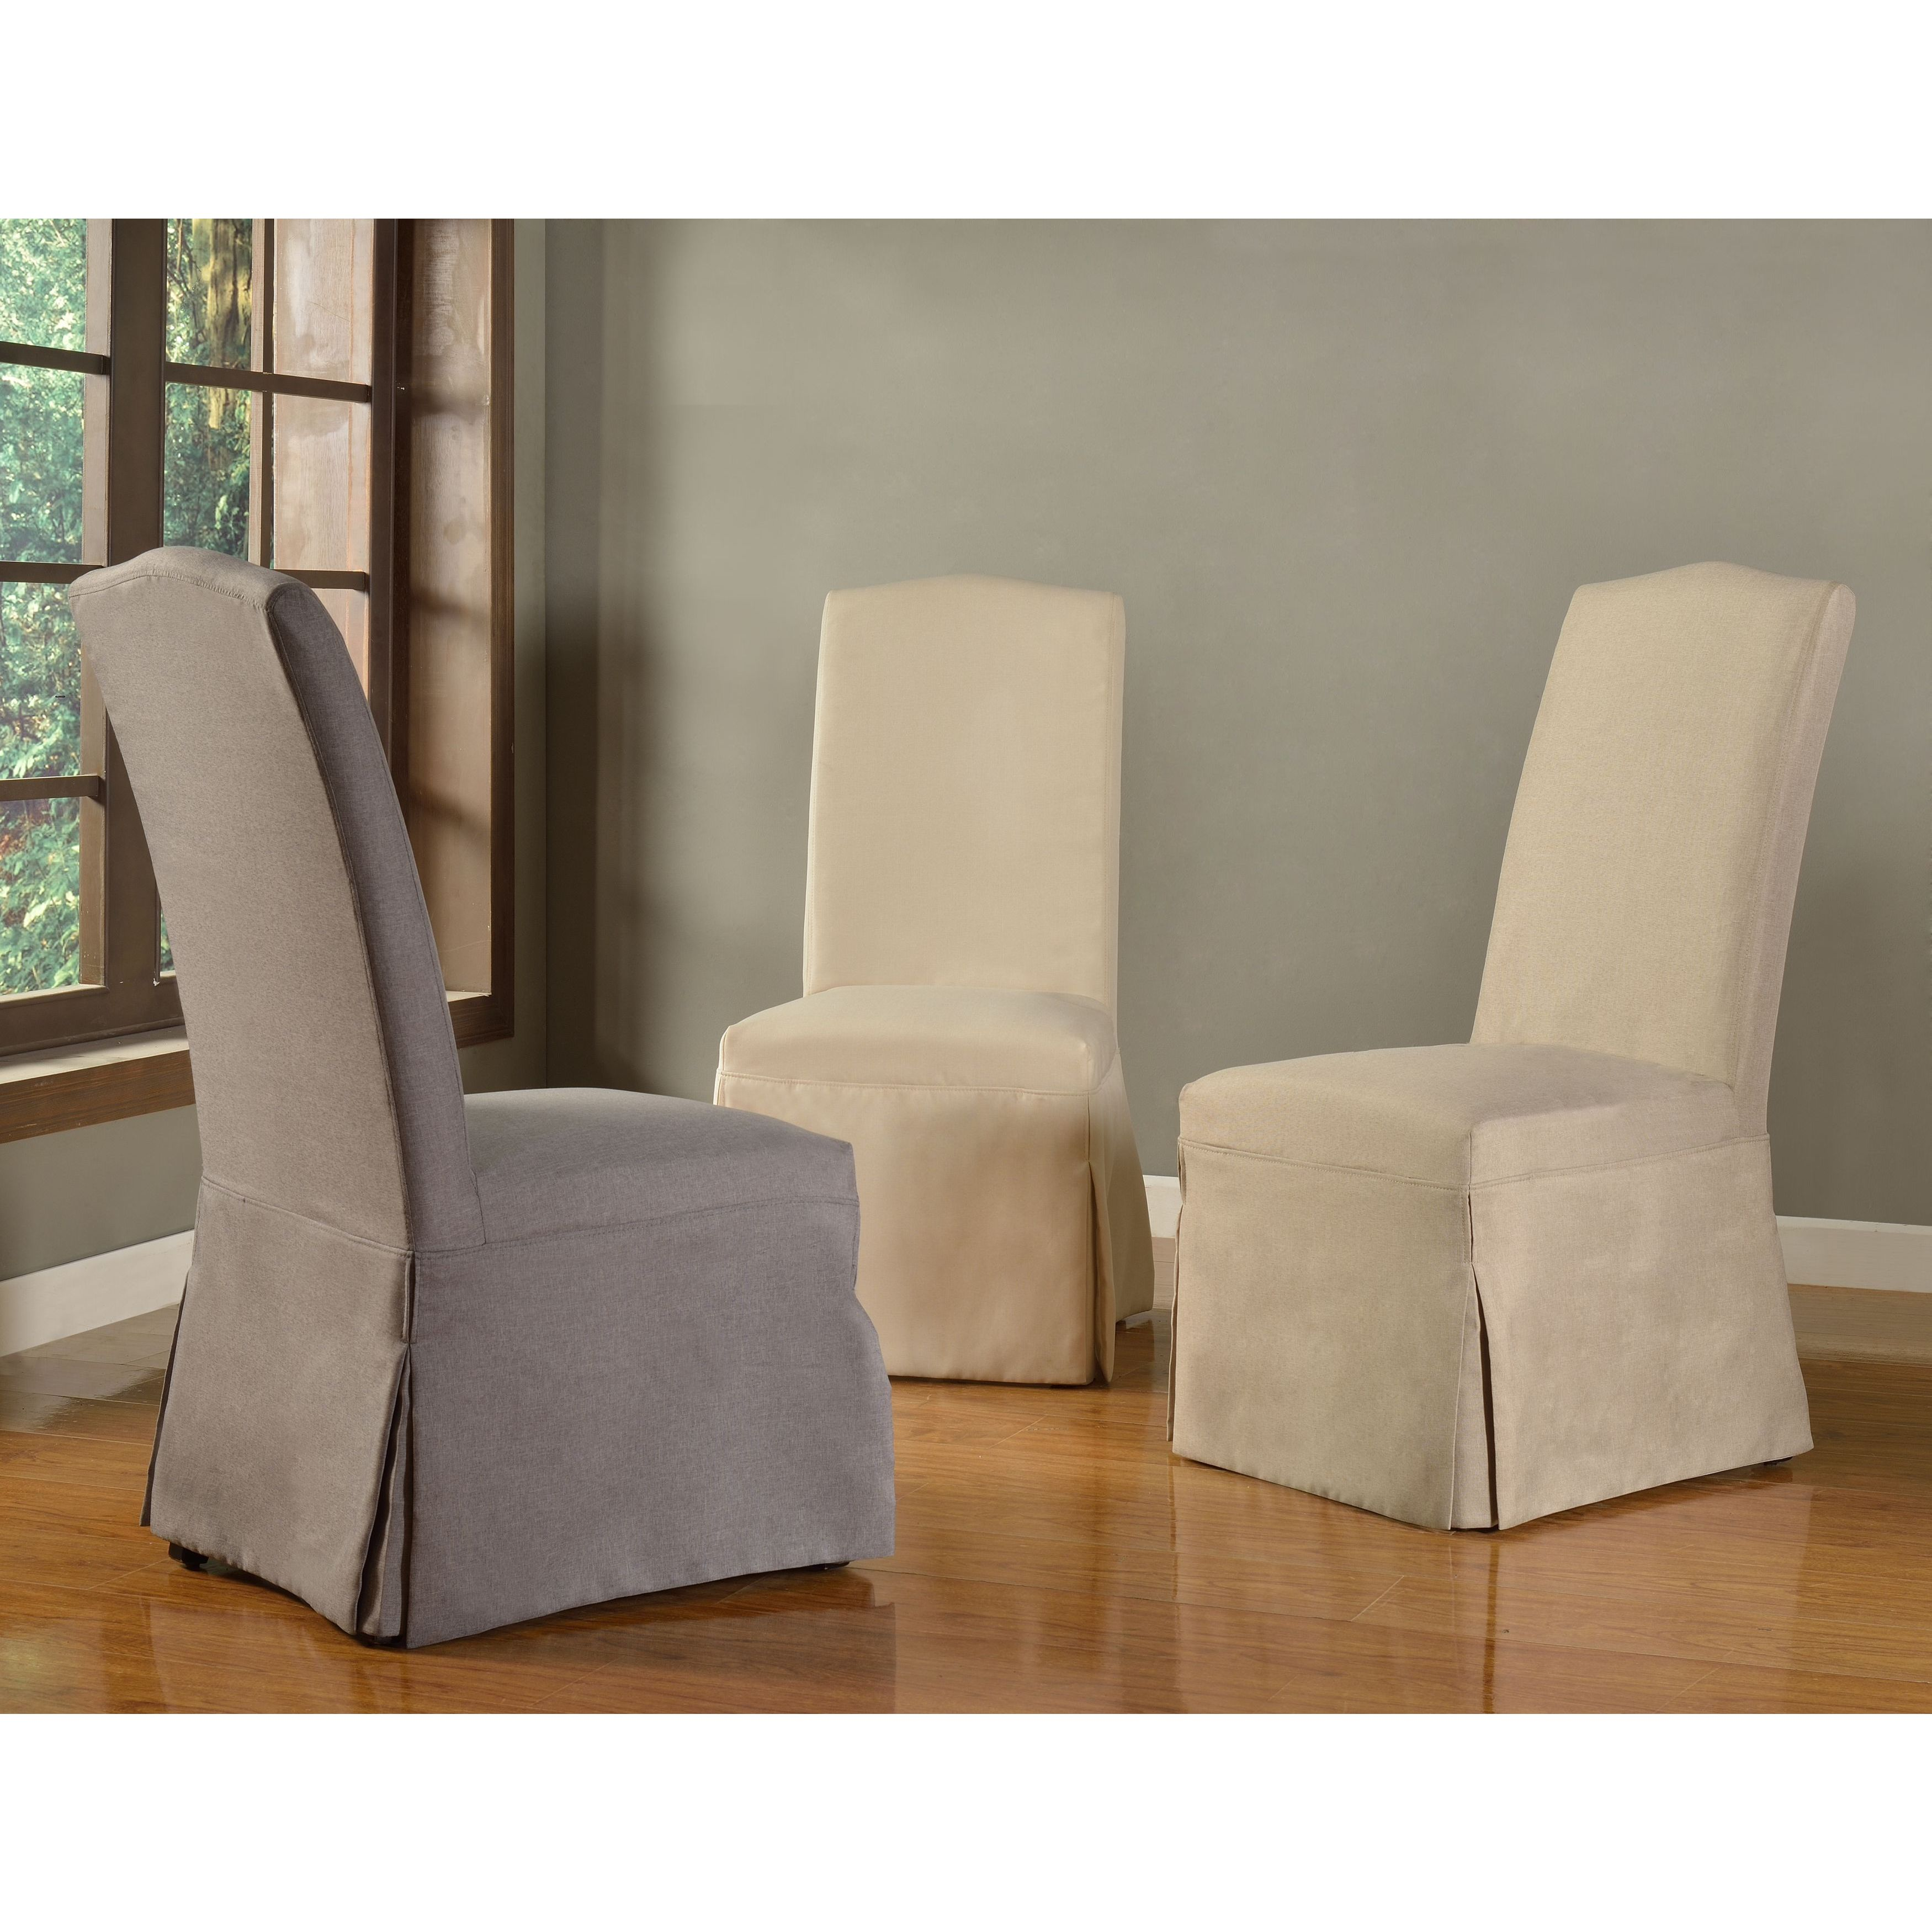 Domusindo Slipcovered Camelback Dining Chair Set Of 2 Free Shipping Today 10160564